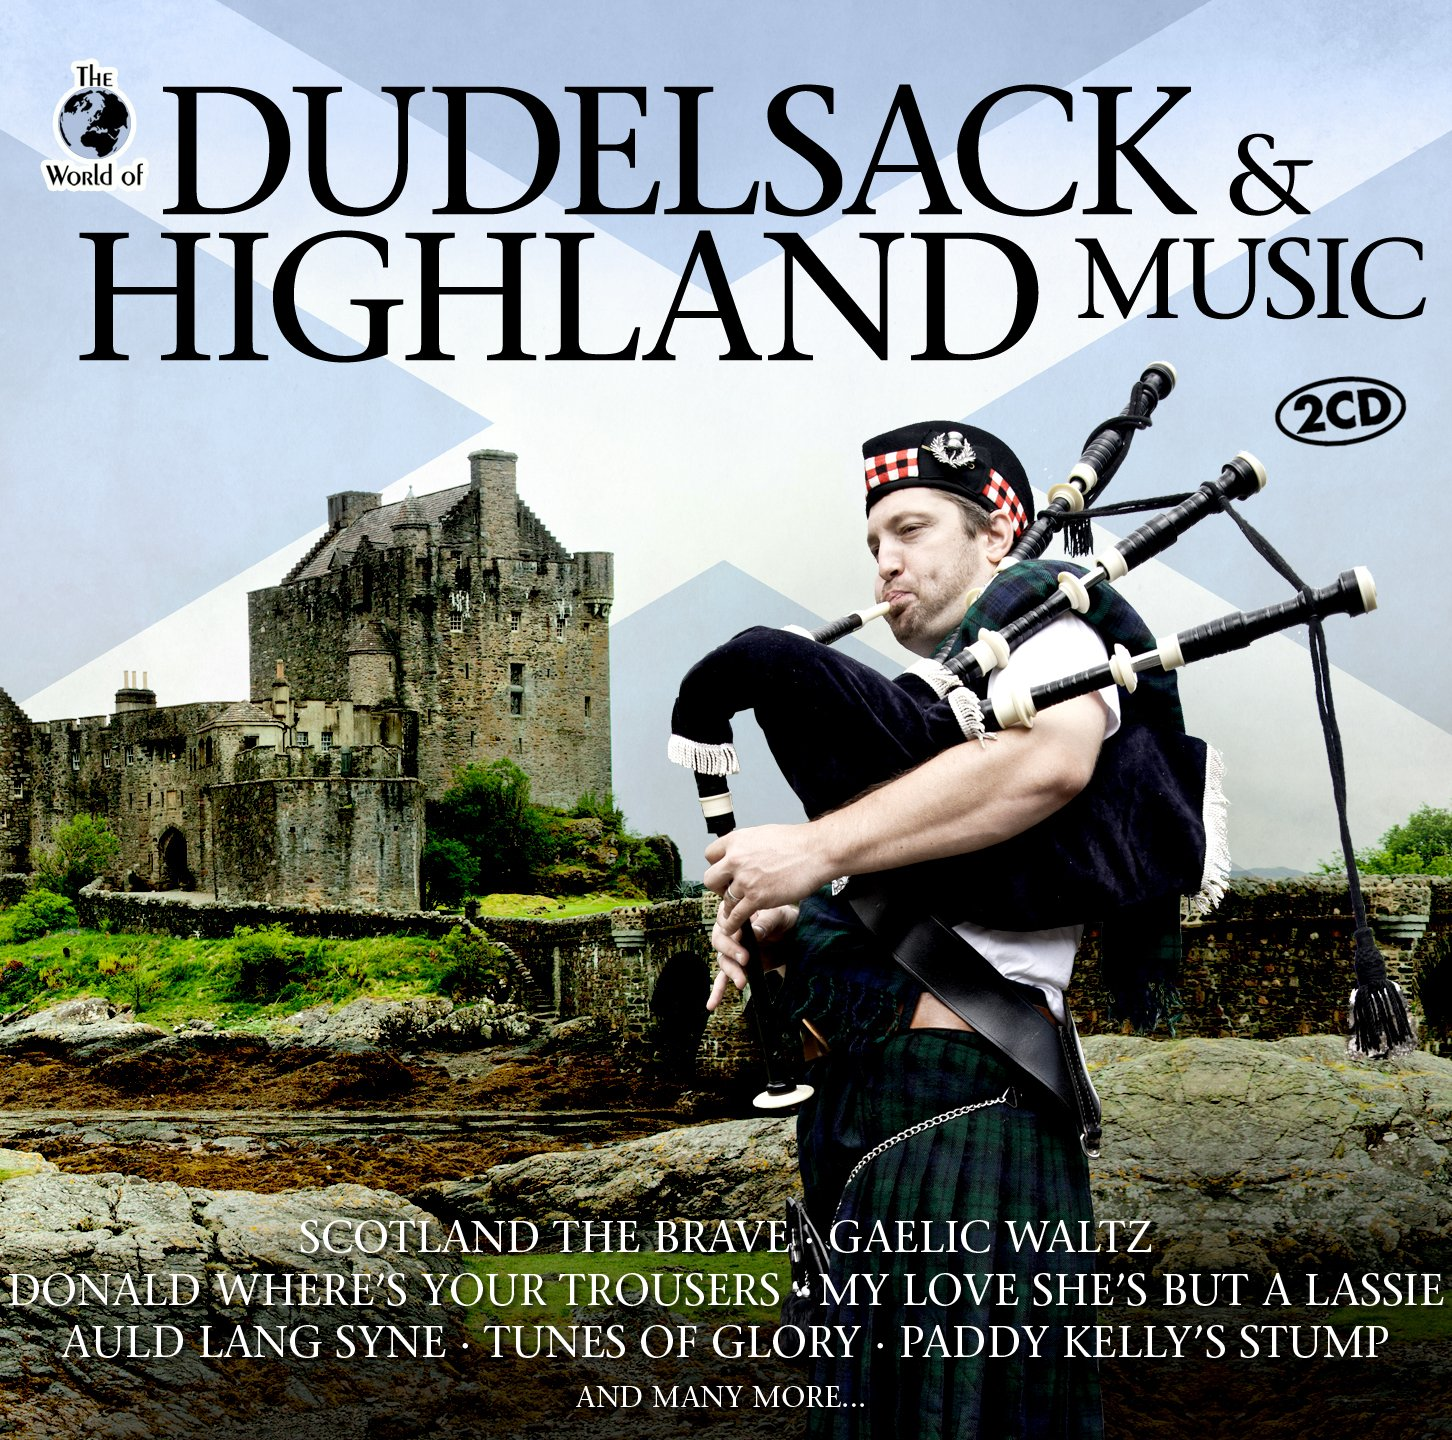 New sales Limited time cheap sale W.O. Dudelsack Music Highland